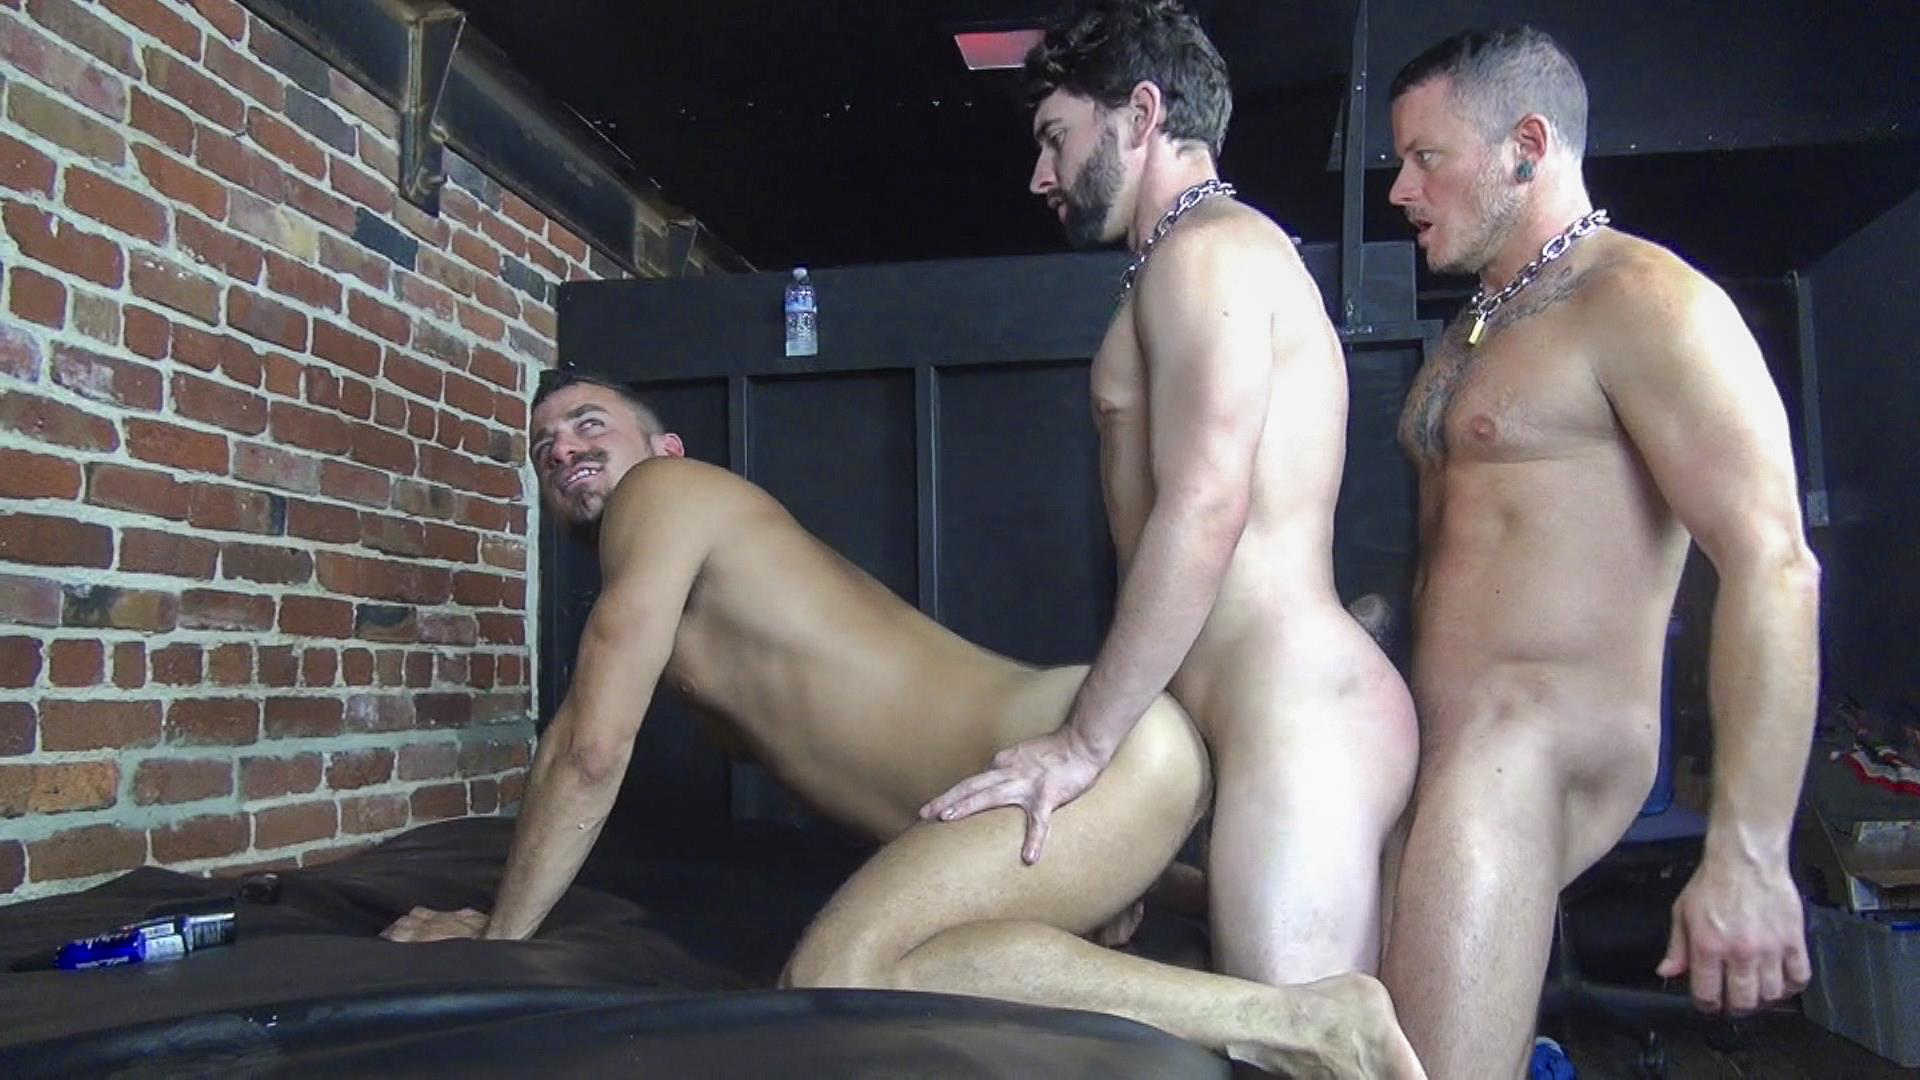 Raw-Fuck-Club-Max-Cameron-and-Jackson-Fillmore-and-Leon-Fox-Bareback-Double-Penetration-Amateur-Gay-Porn-02 Getting Double Penetrated Bareback By A Big Uncut Cock